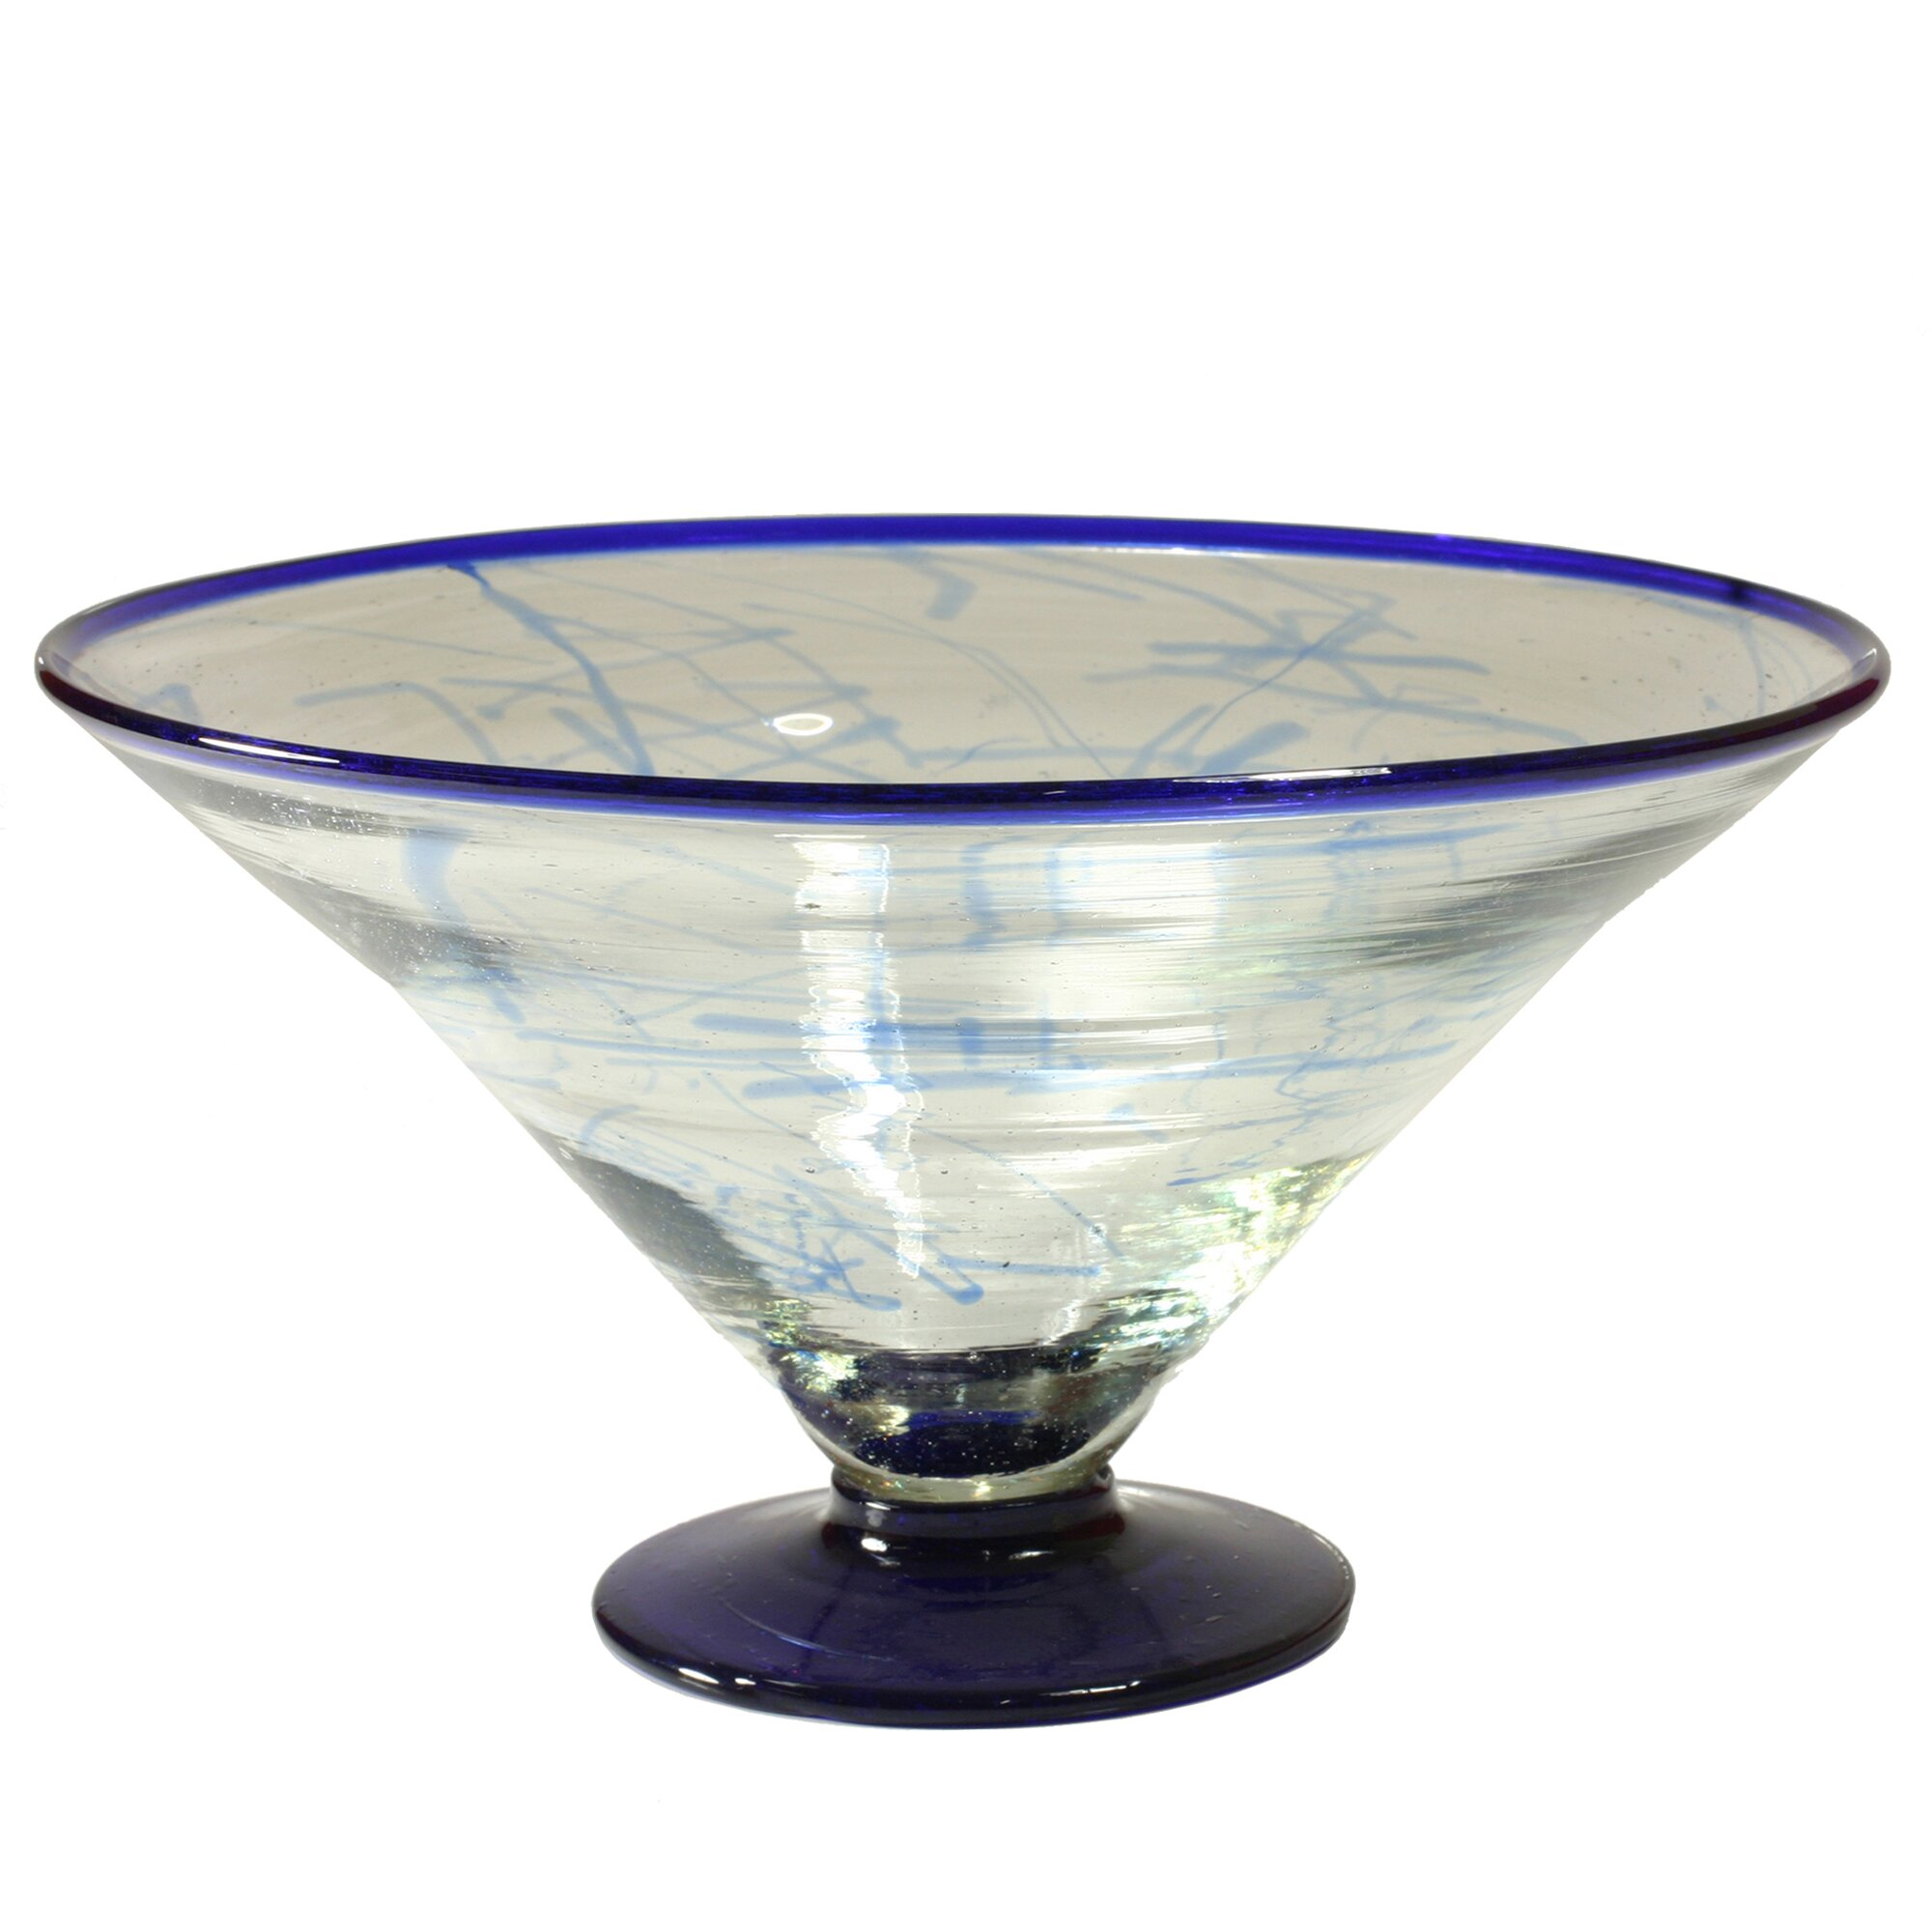 cantel blown glass artisans decorative glass centerpiece serving bowl - Decorative Glass Bowls